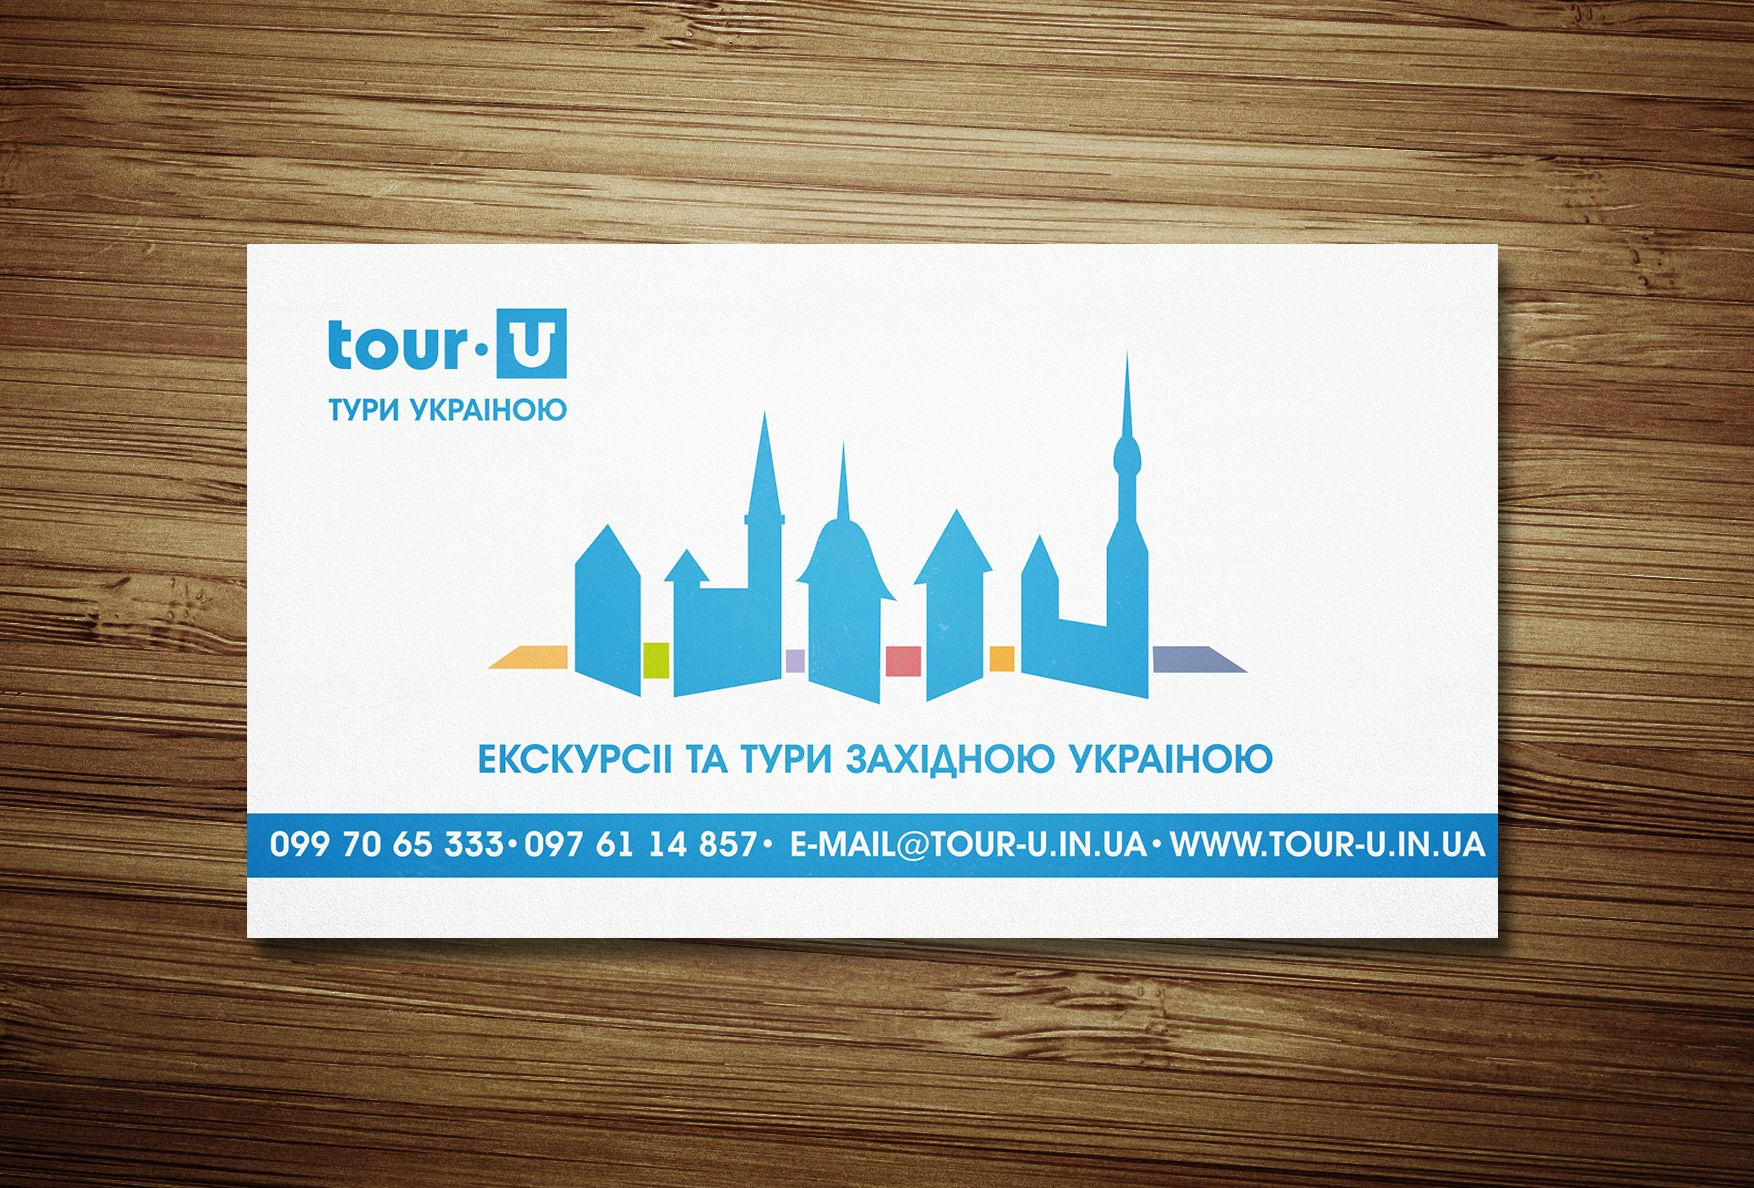 Business cards design for travel agency Tour-Ukraine | Simple brands ...